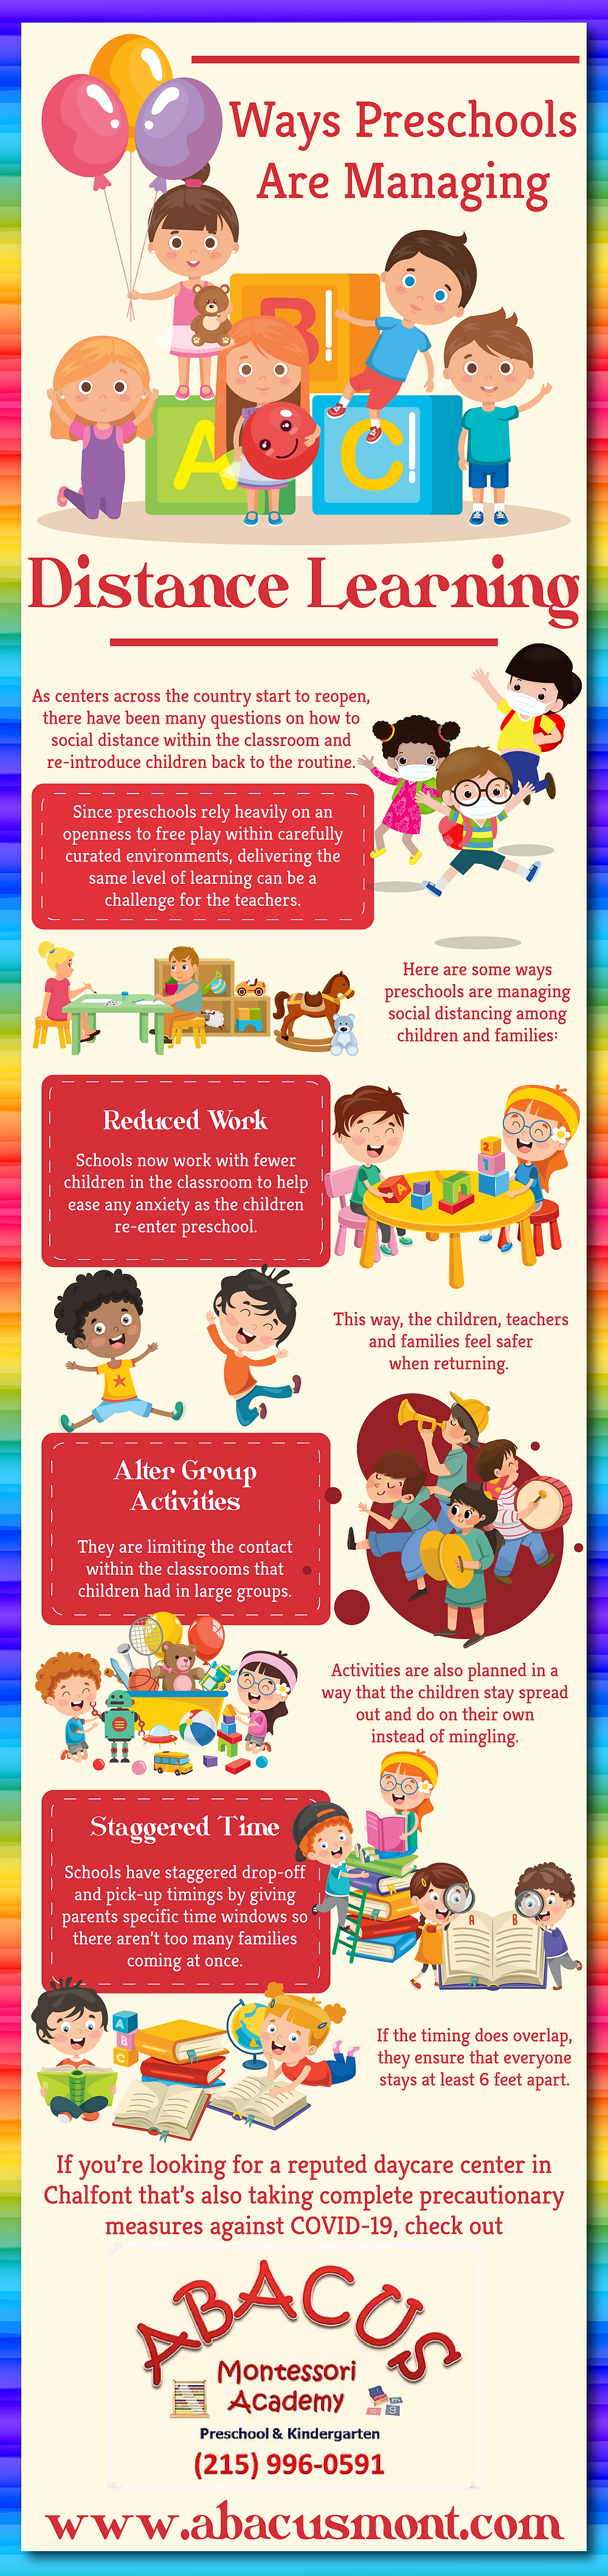 Ways Preschool Are Managing Distance Learning